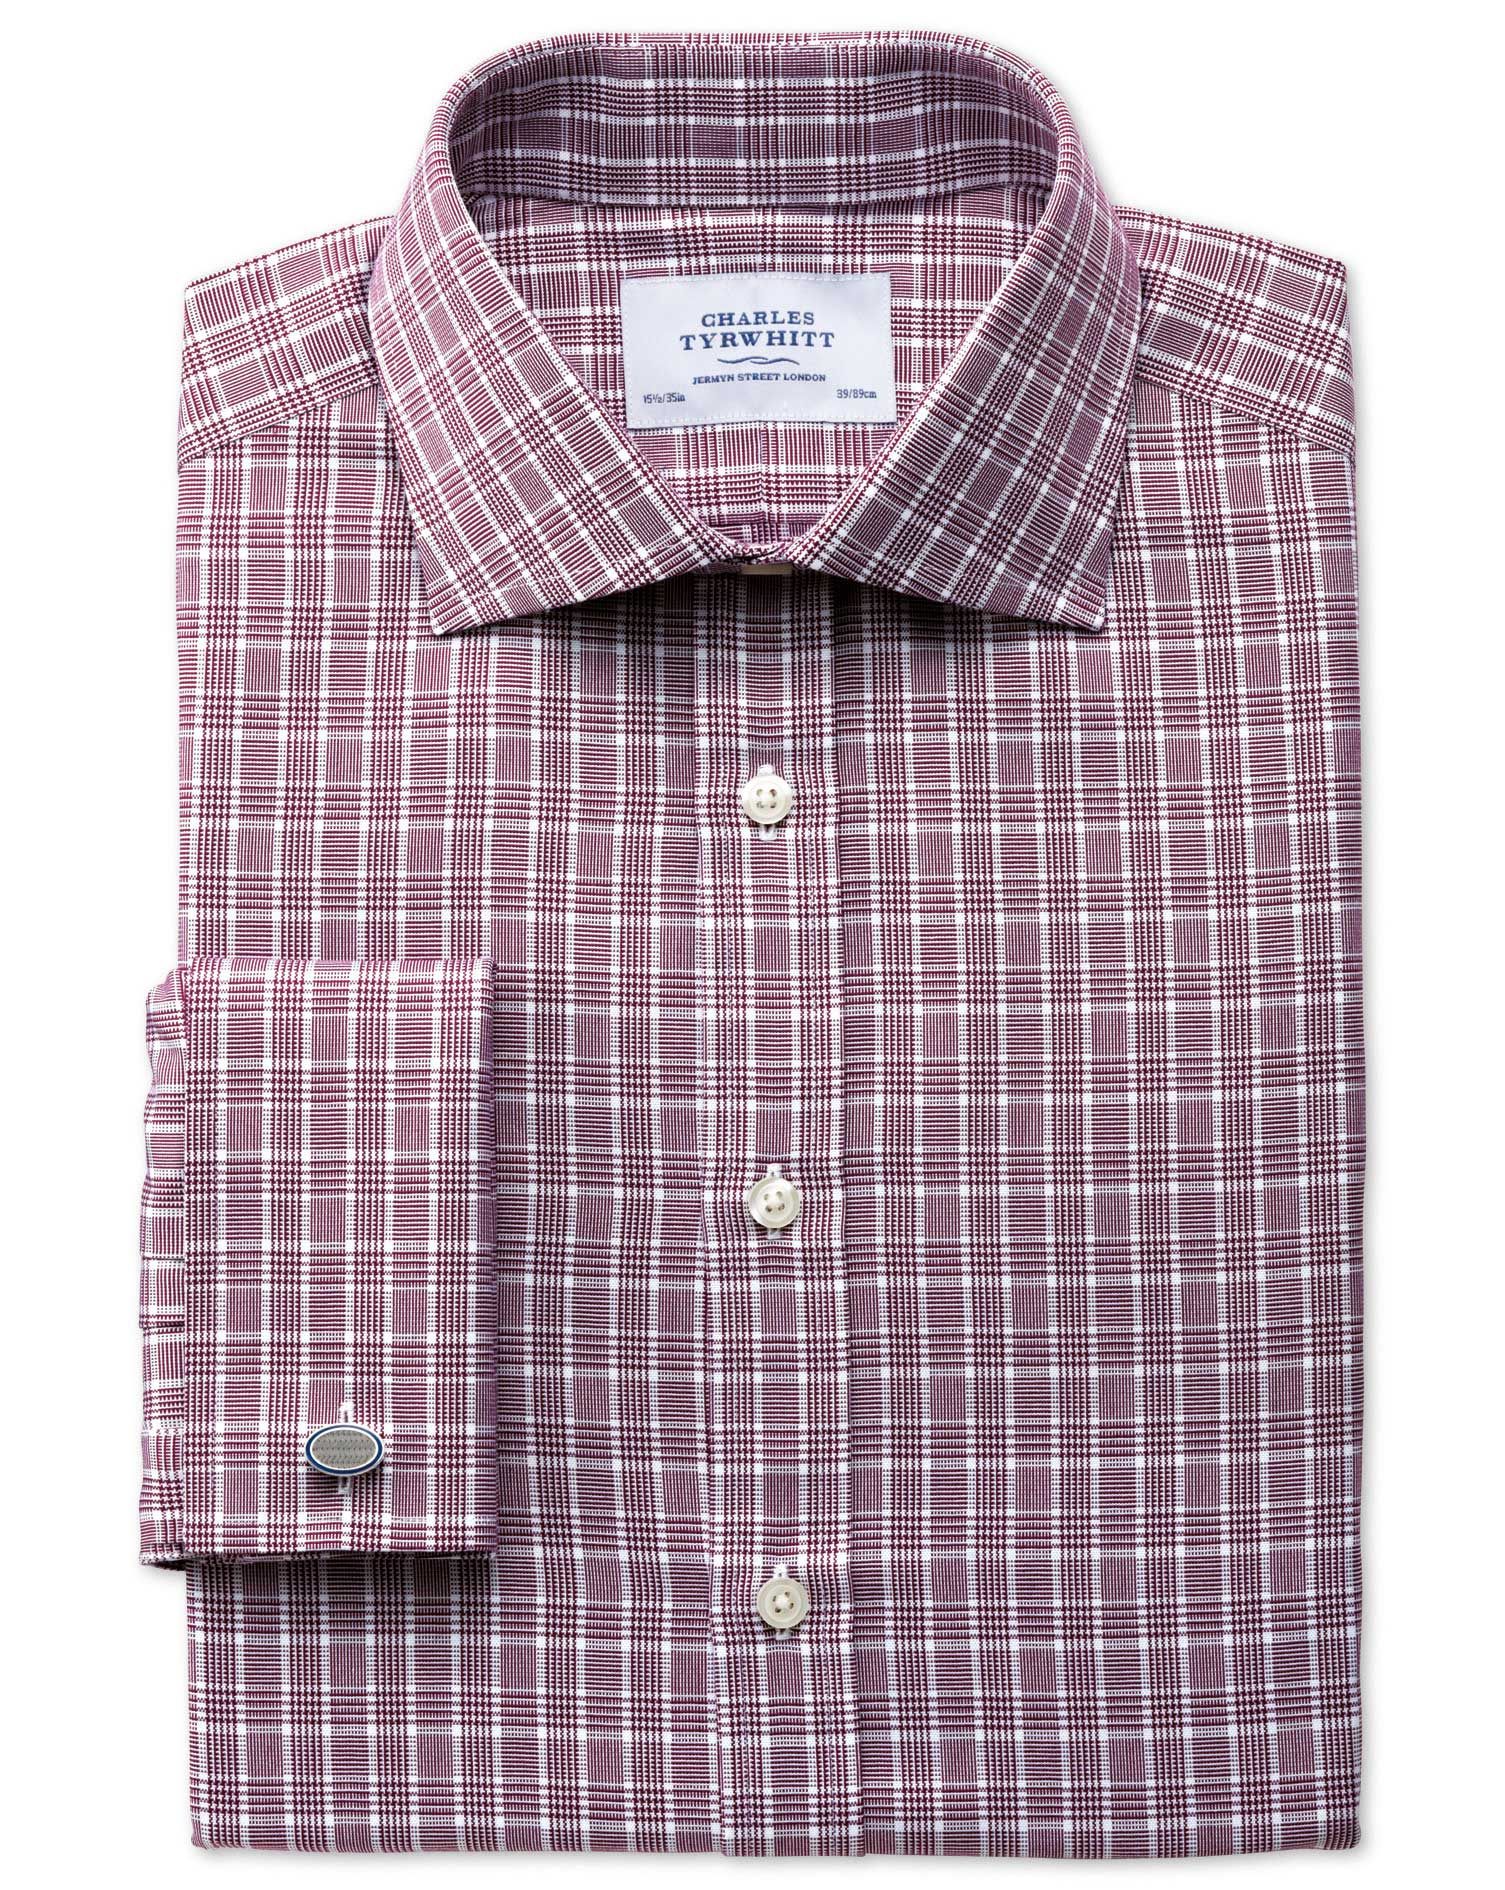 Classic Fit Prince Of Wales Basketweave Berry Cotton Formal Shirt Double Cuff Size 17.5/34 by Charle